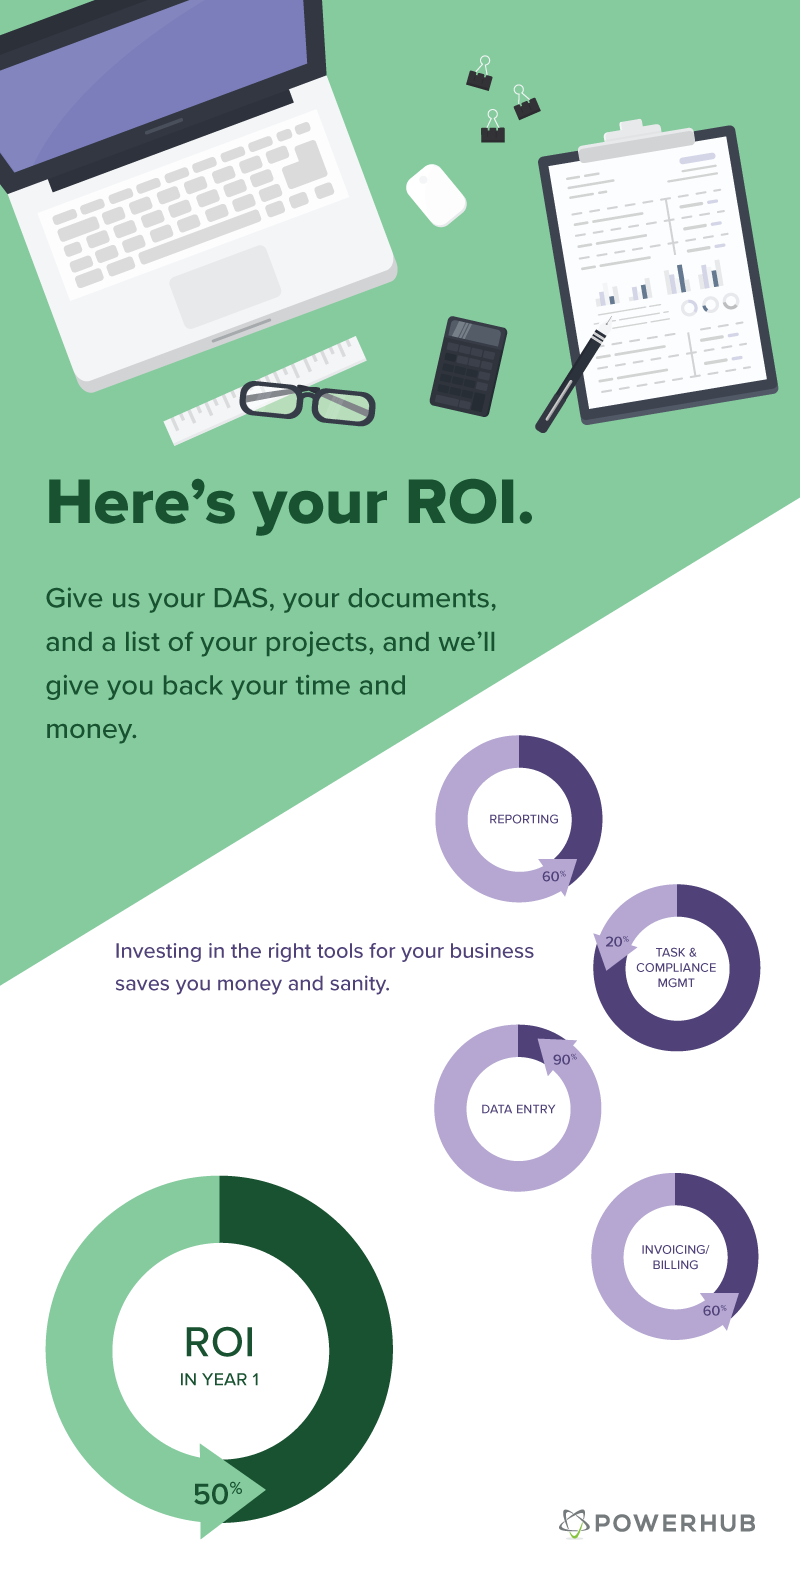 The final product was an infographic for a company blog article. We may also use the donut chart elements for print marketing in the future.